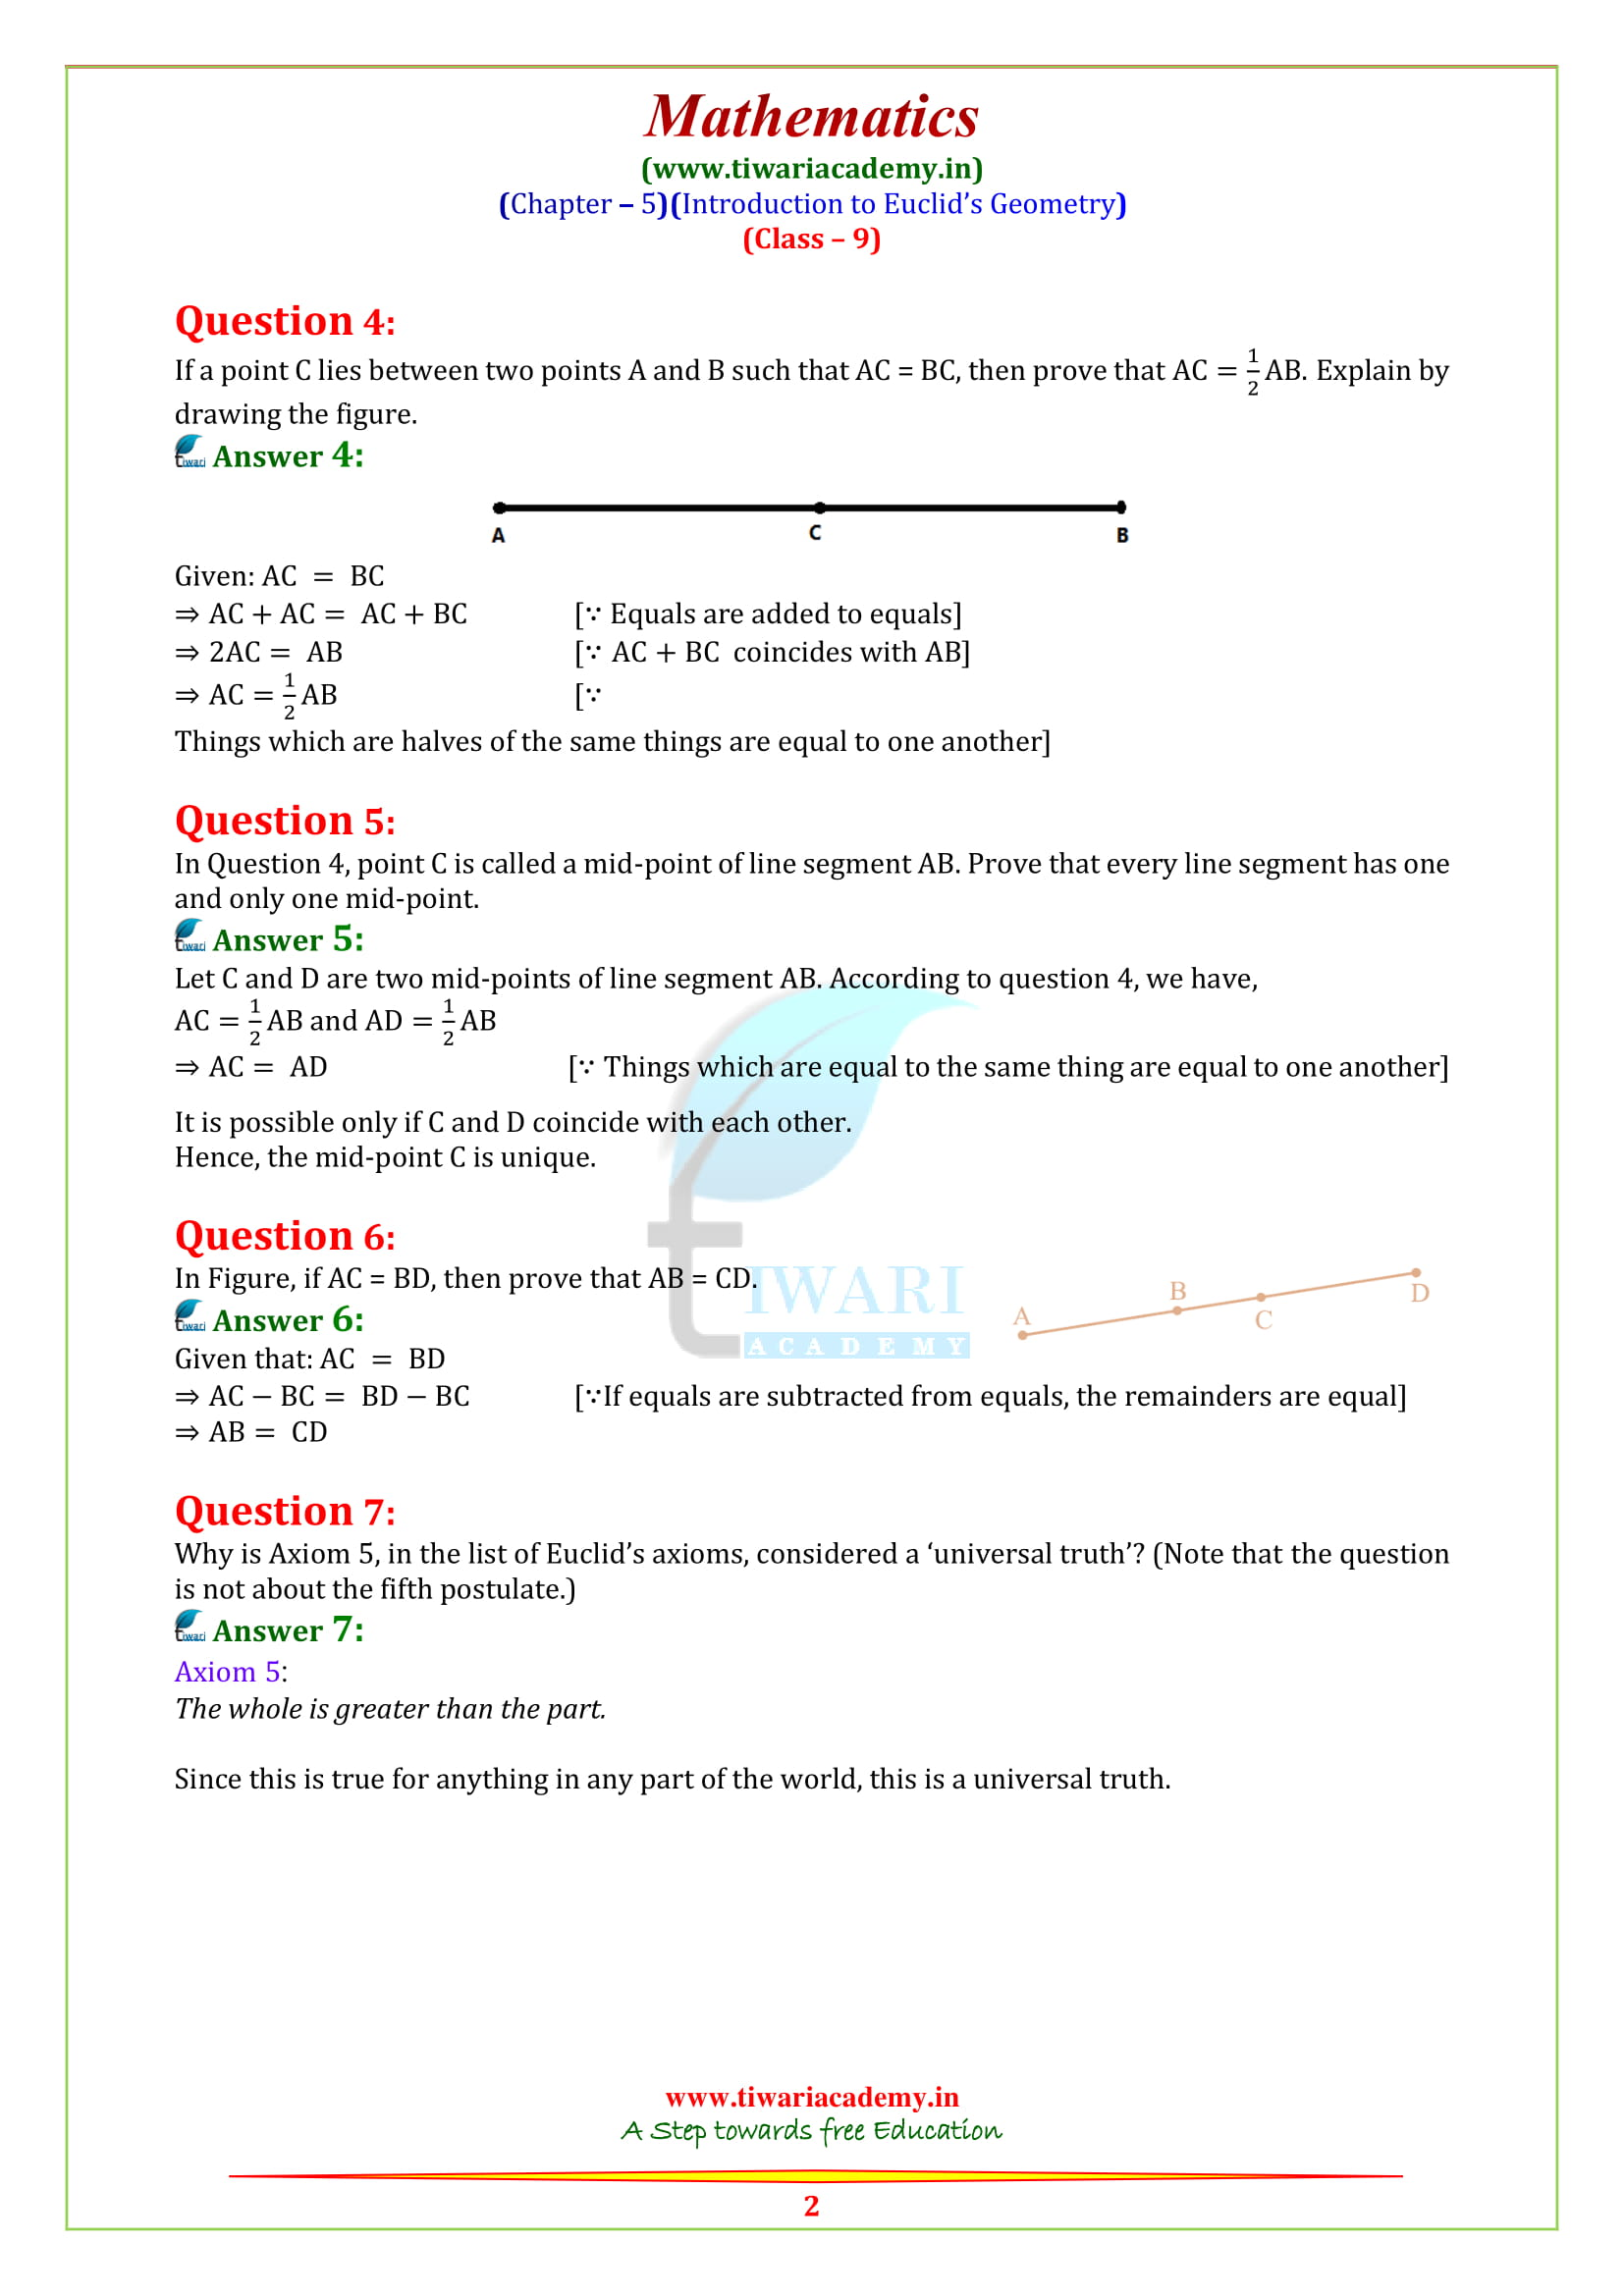 NCERT Solutions for class 9 Maths Chapter 5 Exercise 5.1 all questions